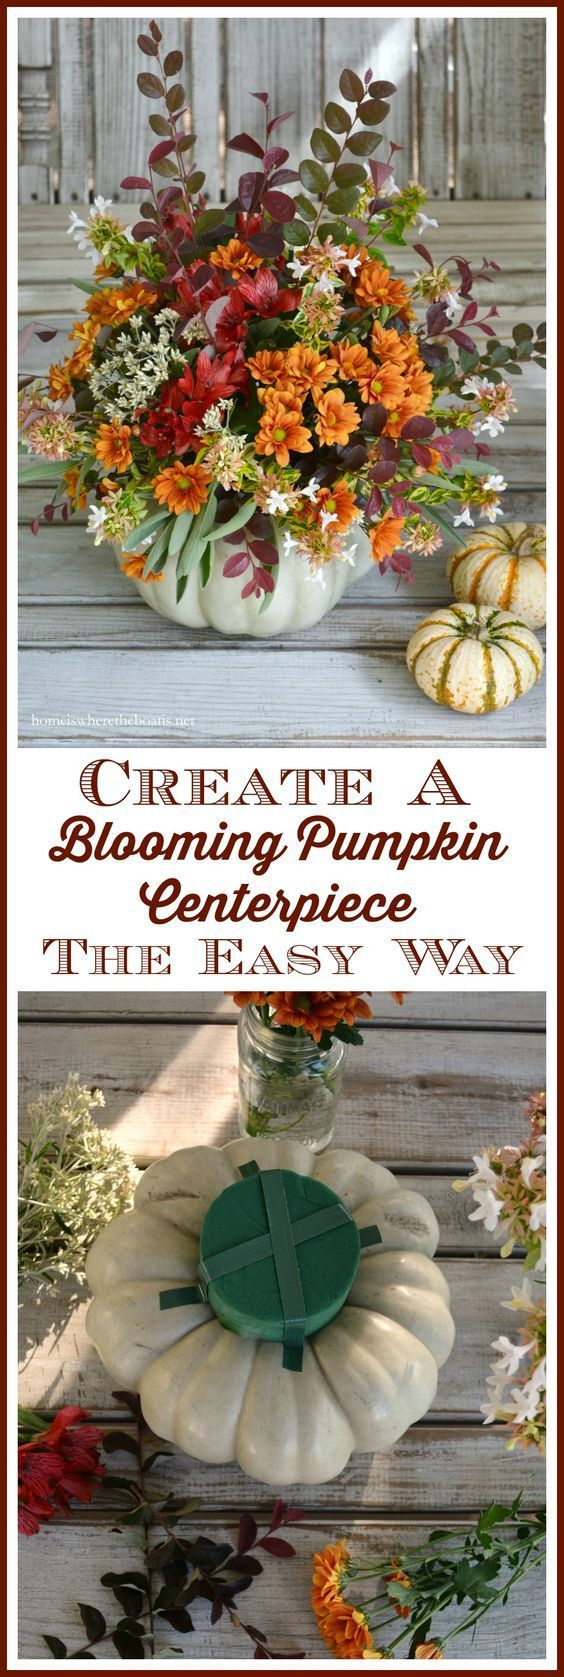 Create a Blooming Pumpkin Centerpiece the Easy Way! | homeiswheretheboatis.net